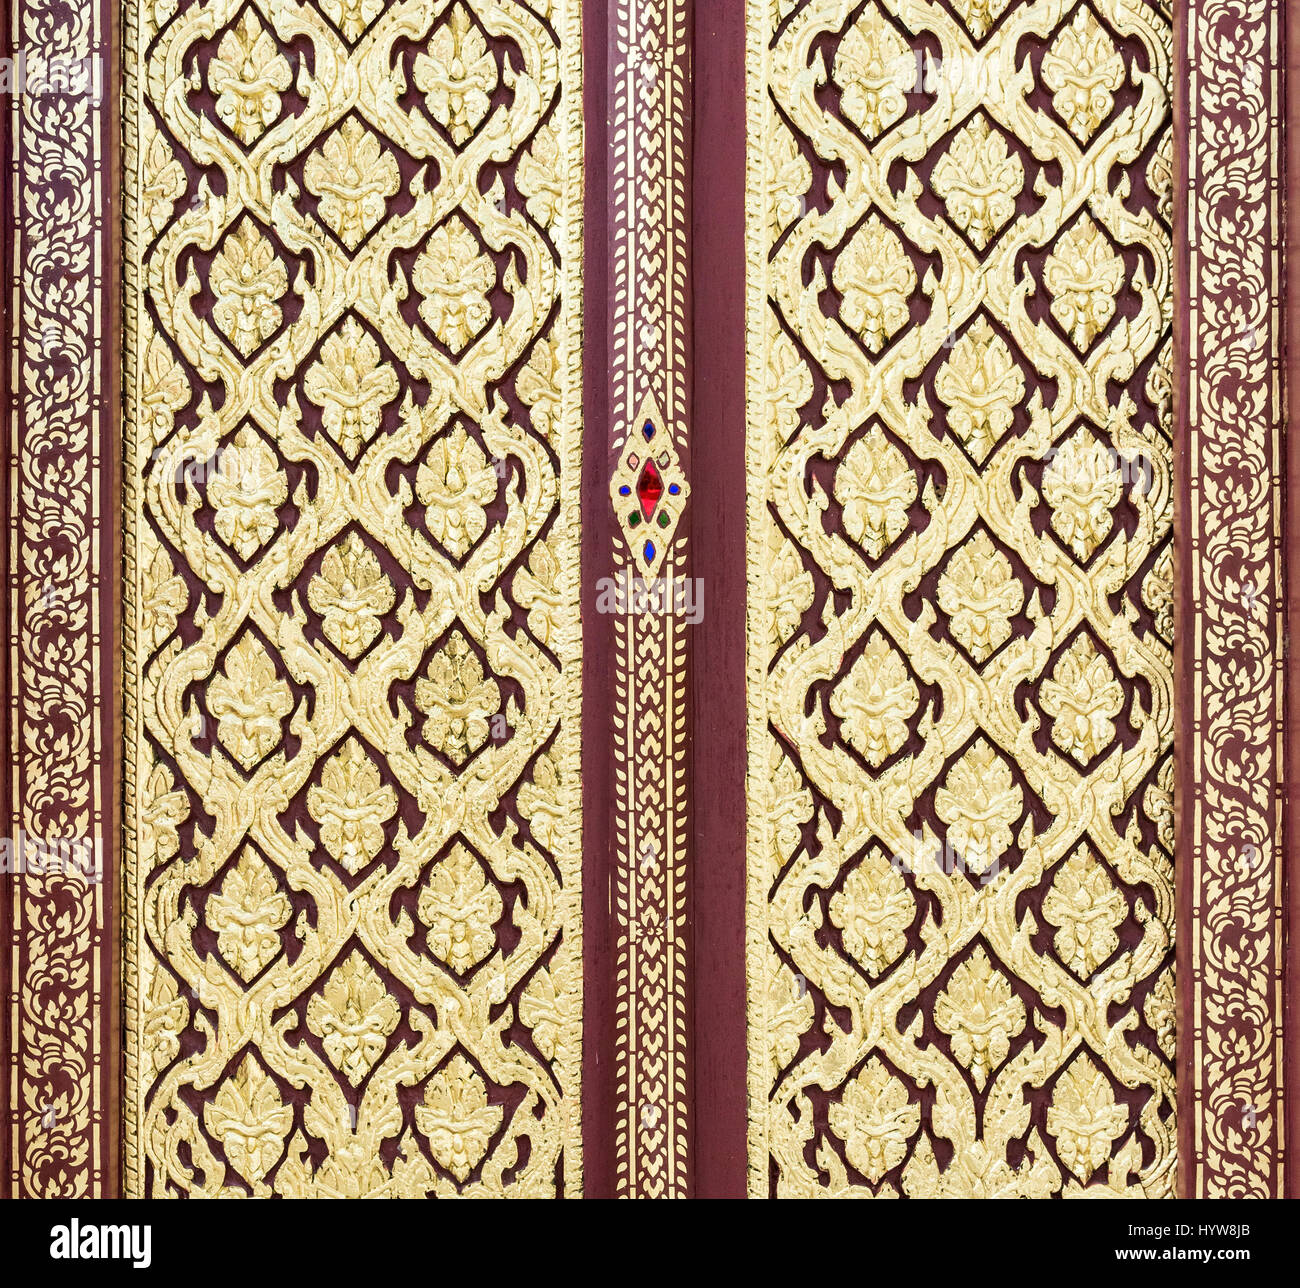 Wooden carved door with the golden pattern in the traditional Thai Stock Photo 137623875 - Alamy  sc 1 st  Alamy & Wooden carved door with the golden pattern in the traditional Thai ...